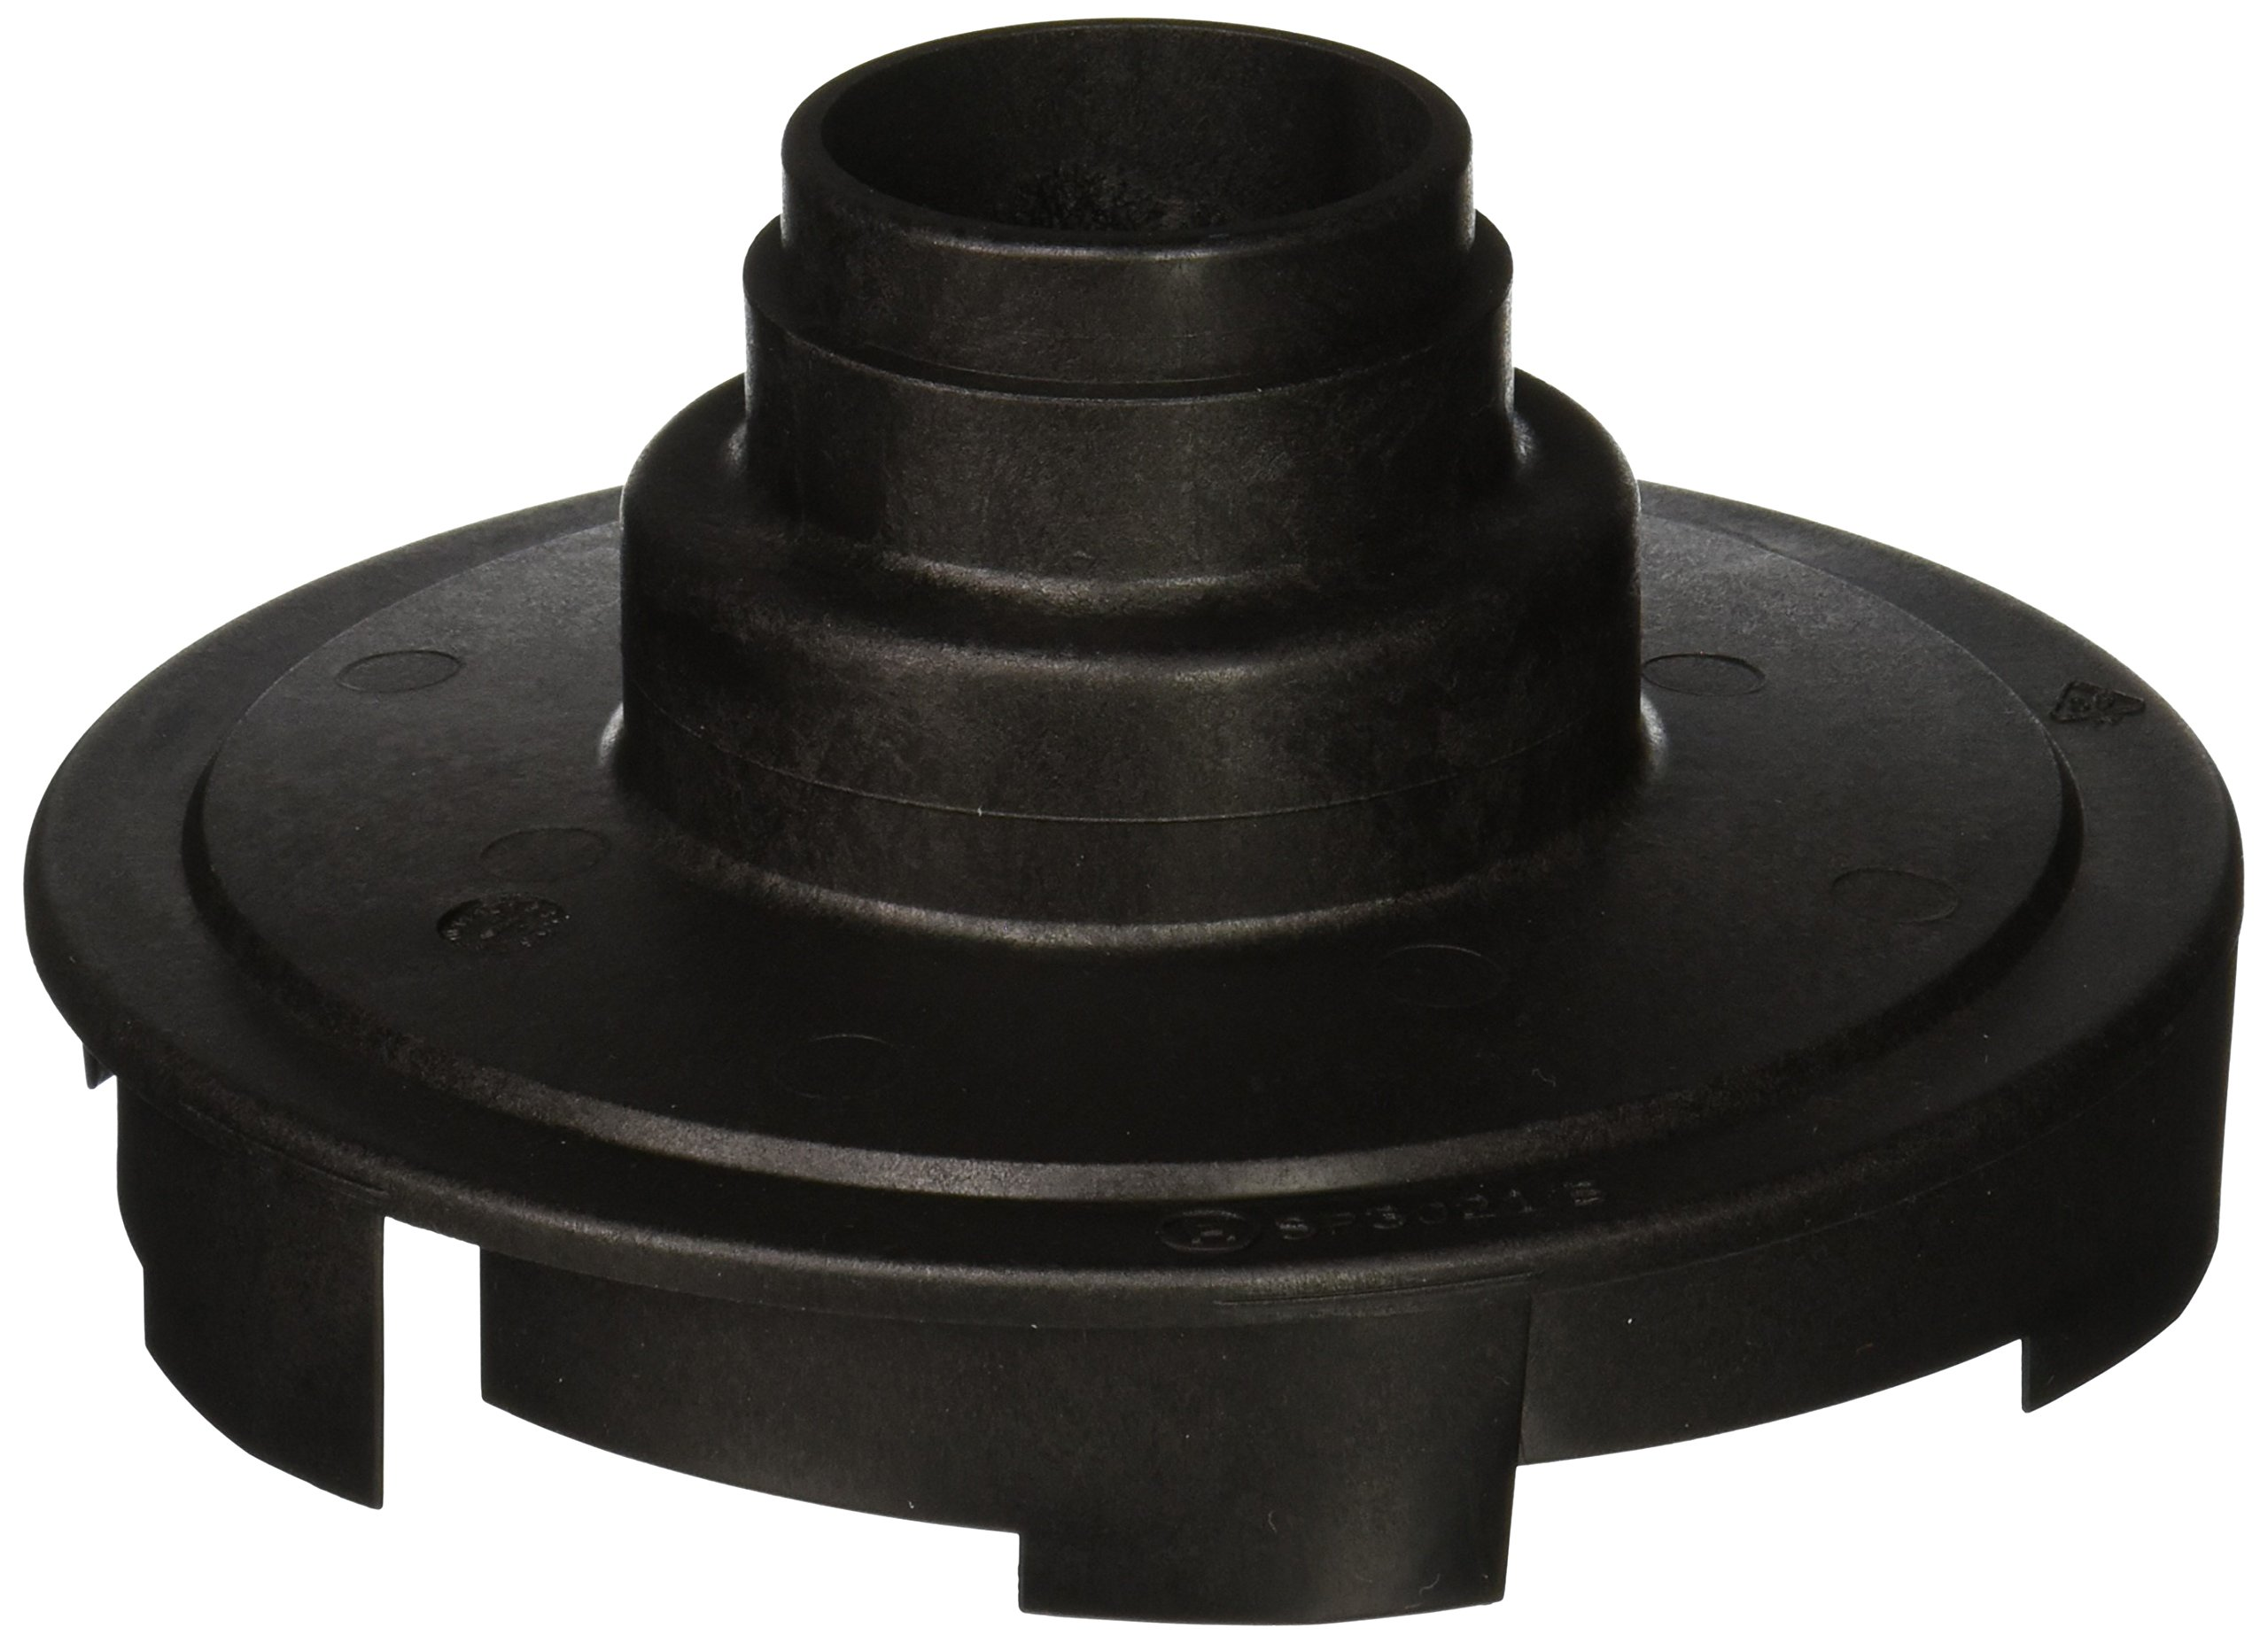 Hayward SPX3021B 2-1/2 and 3-Horsepower Diffuser Replacement for Super Ii Pump